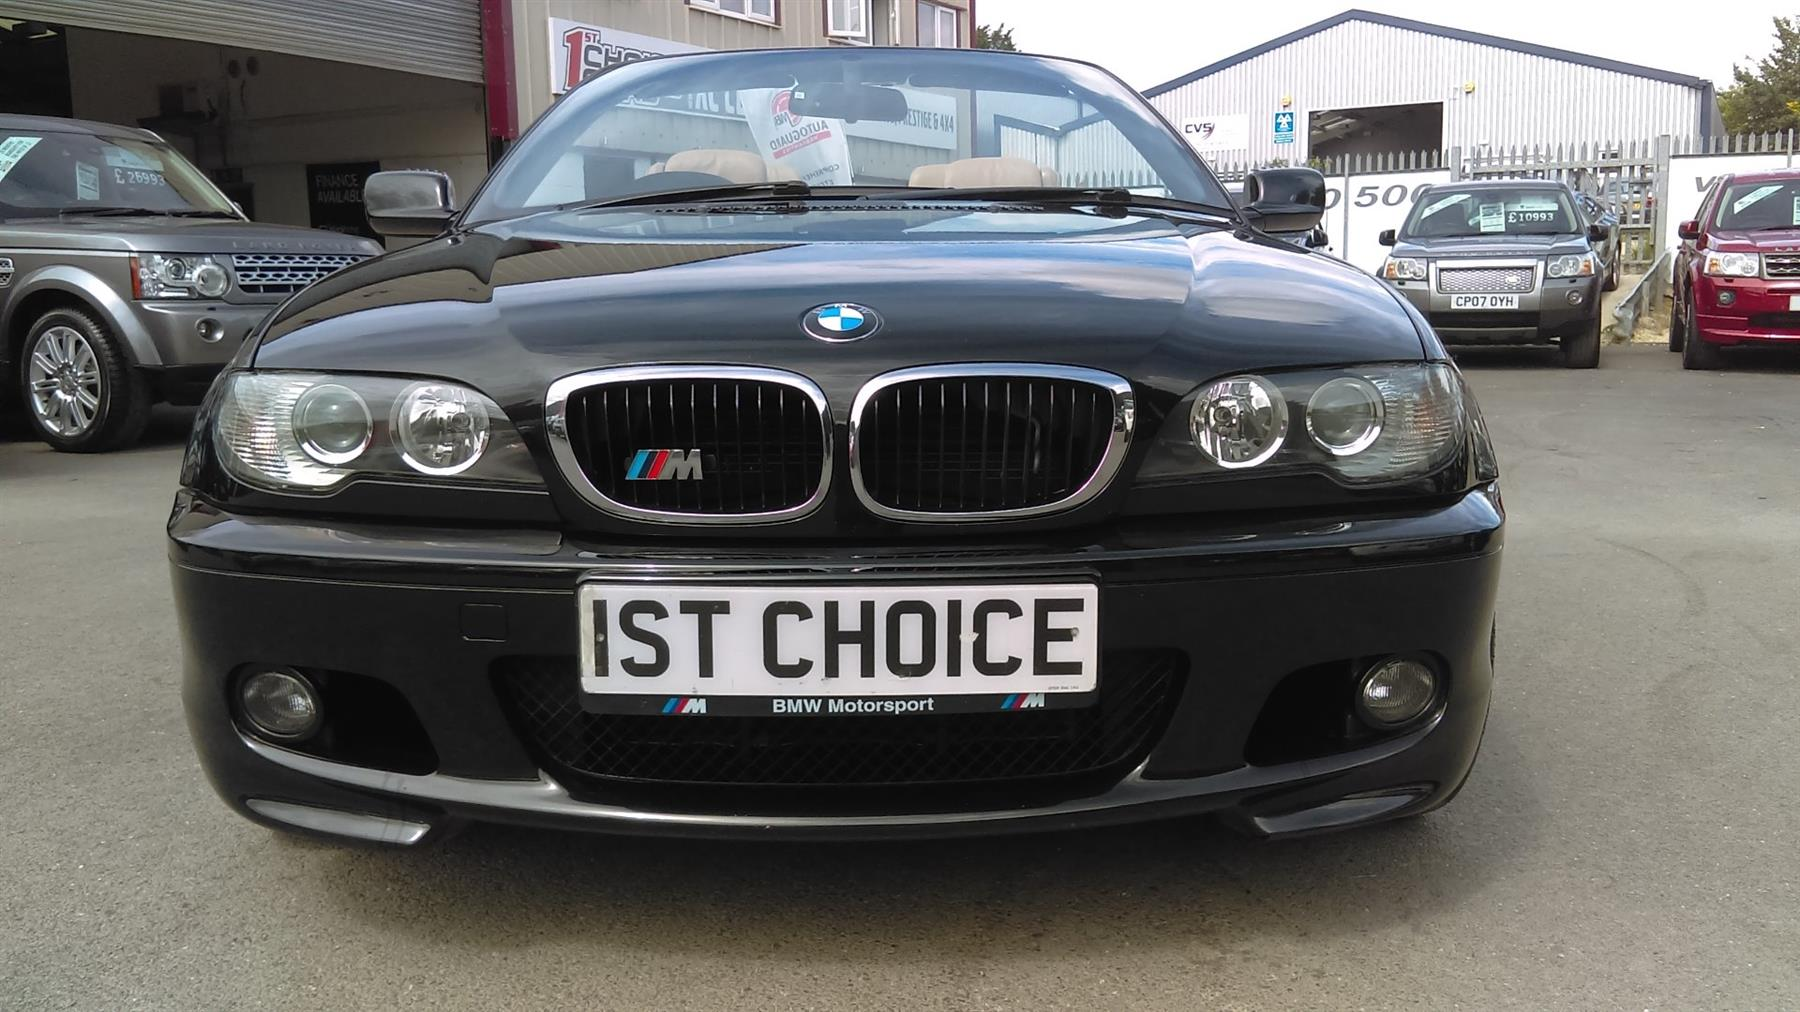 BMW 3 series 318Ci 2006 photo - 8